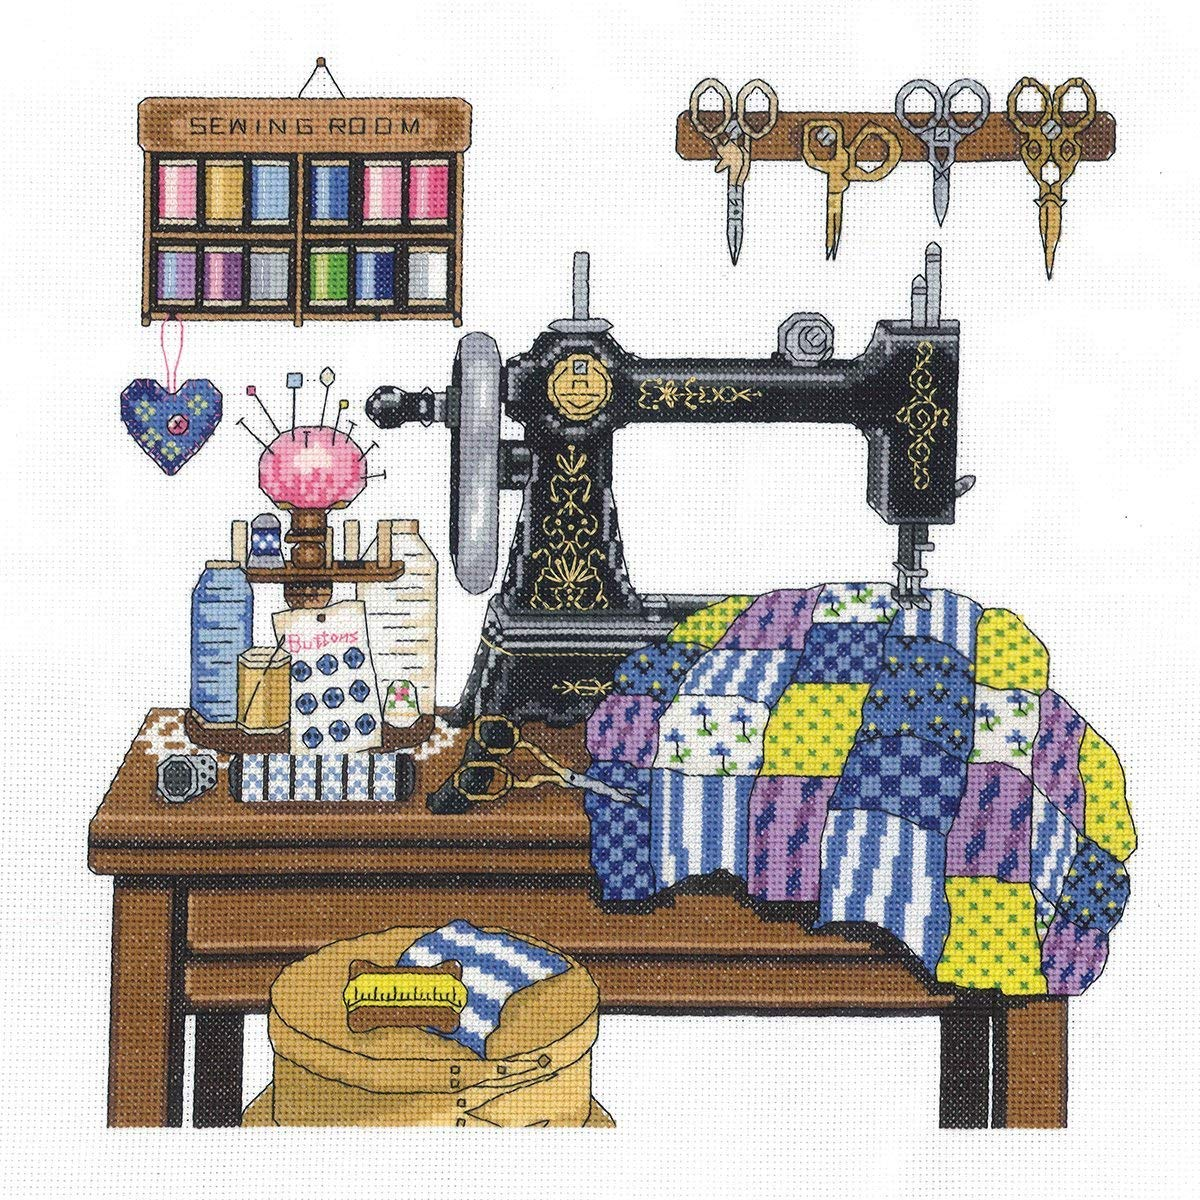 Janlynn 14 Count Antique Sewing Room Cross Stitch Kit, 12 by 12-Inch 17-0100